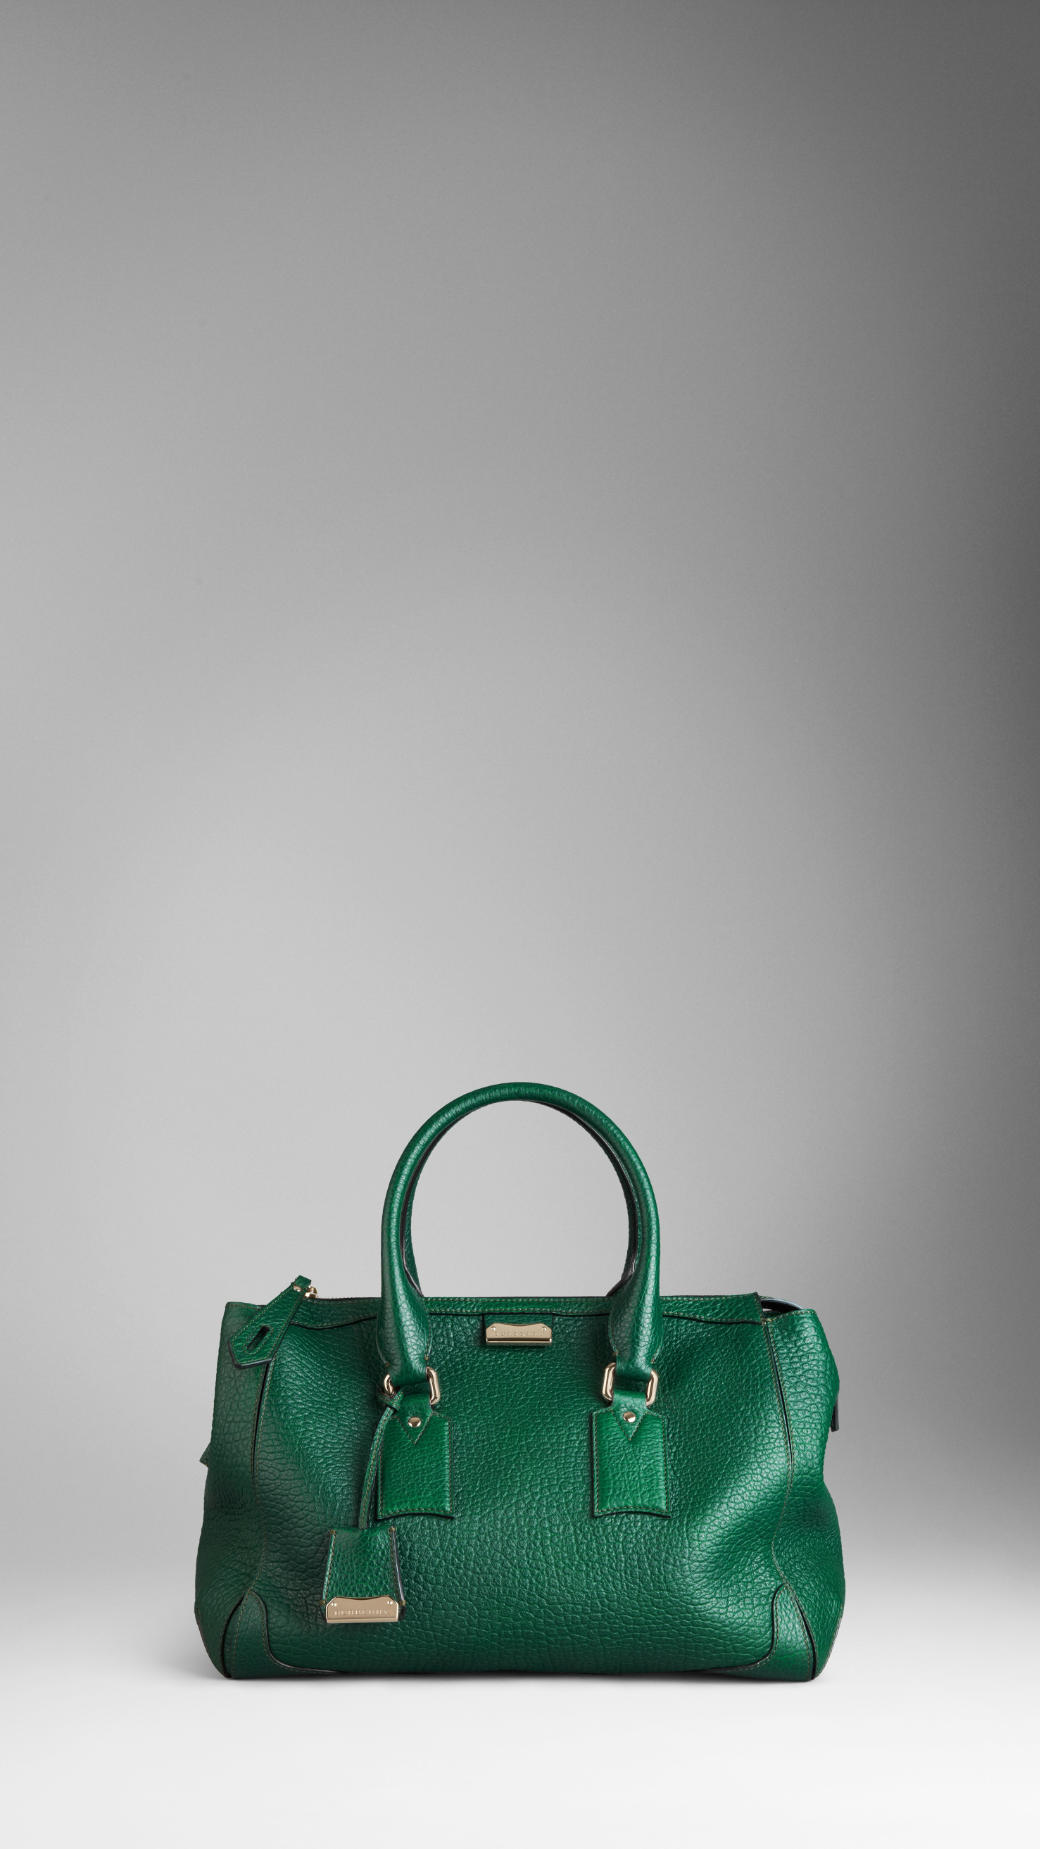 2f97255113 Burberry Large Heritage Grain Leather Tote Bag in Green - Lyst